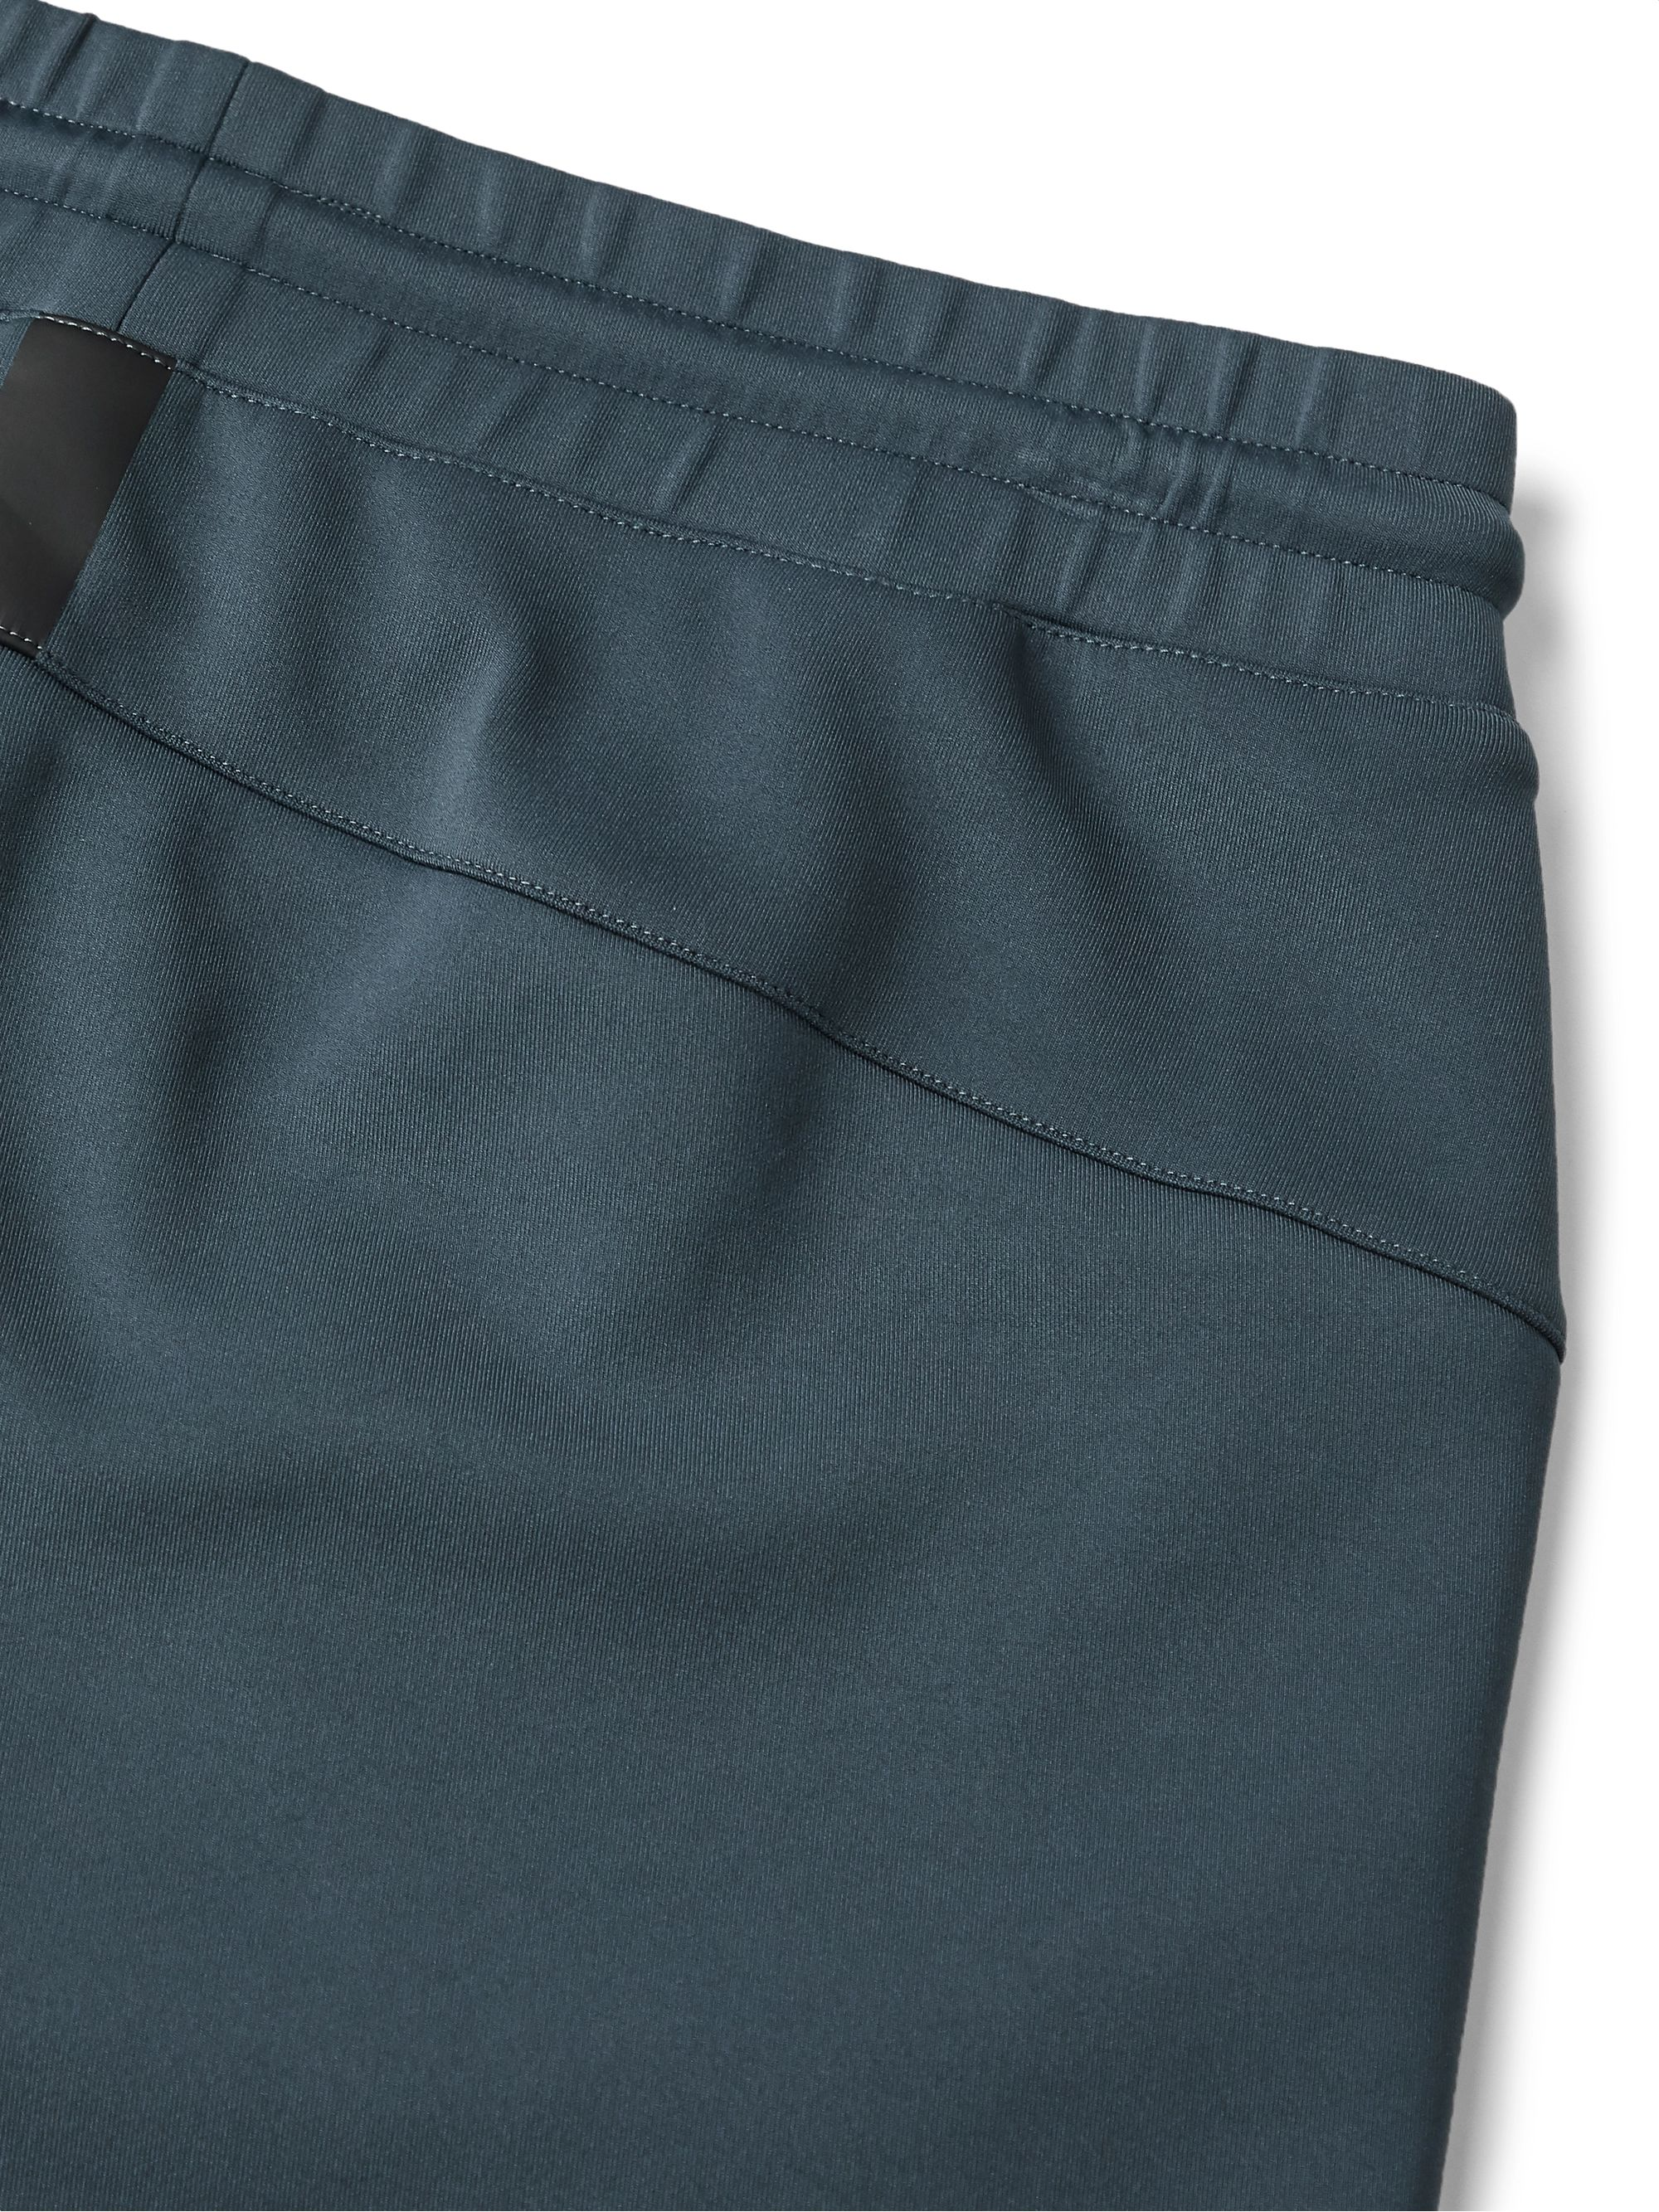 ORLEBAR BROWN Shark Capsule Blundell Stretch-Jersey Drawstring Shorts